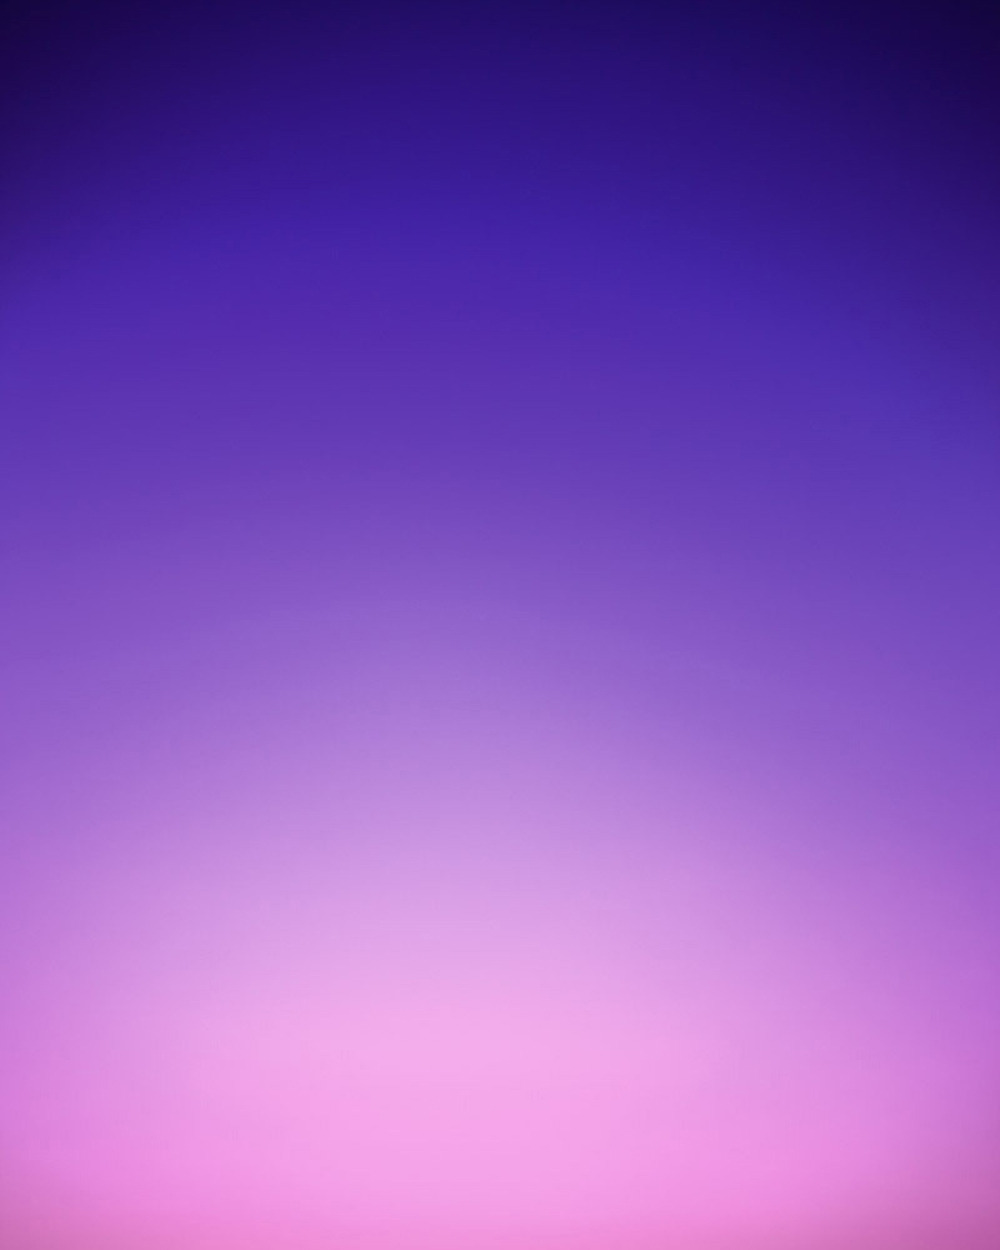 alecshao:  More from Eric Cahan's Sky Series cahan.tumblr.com